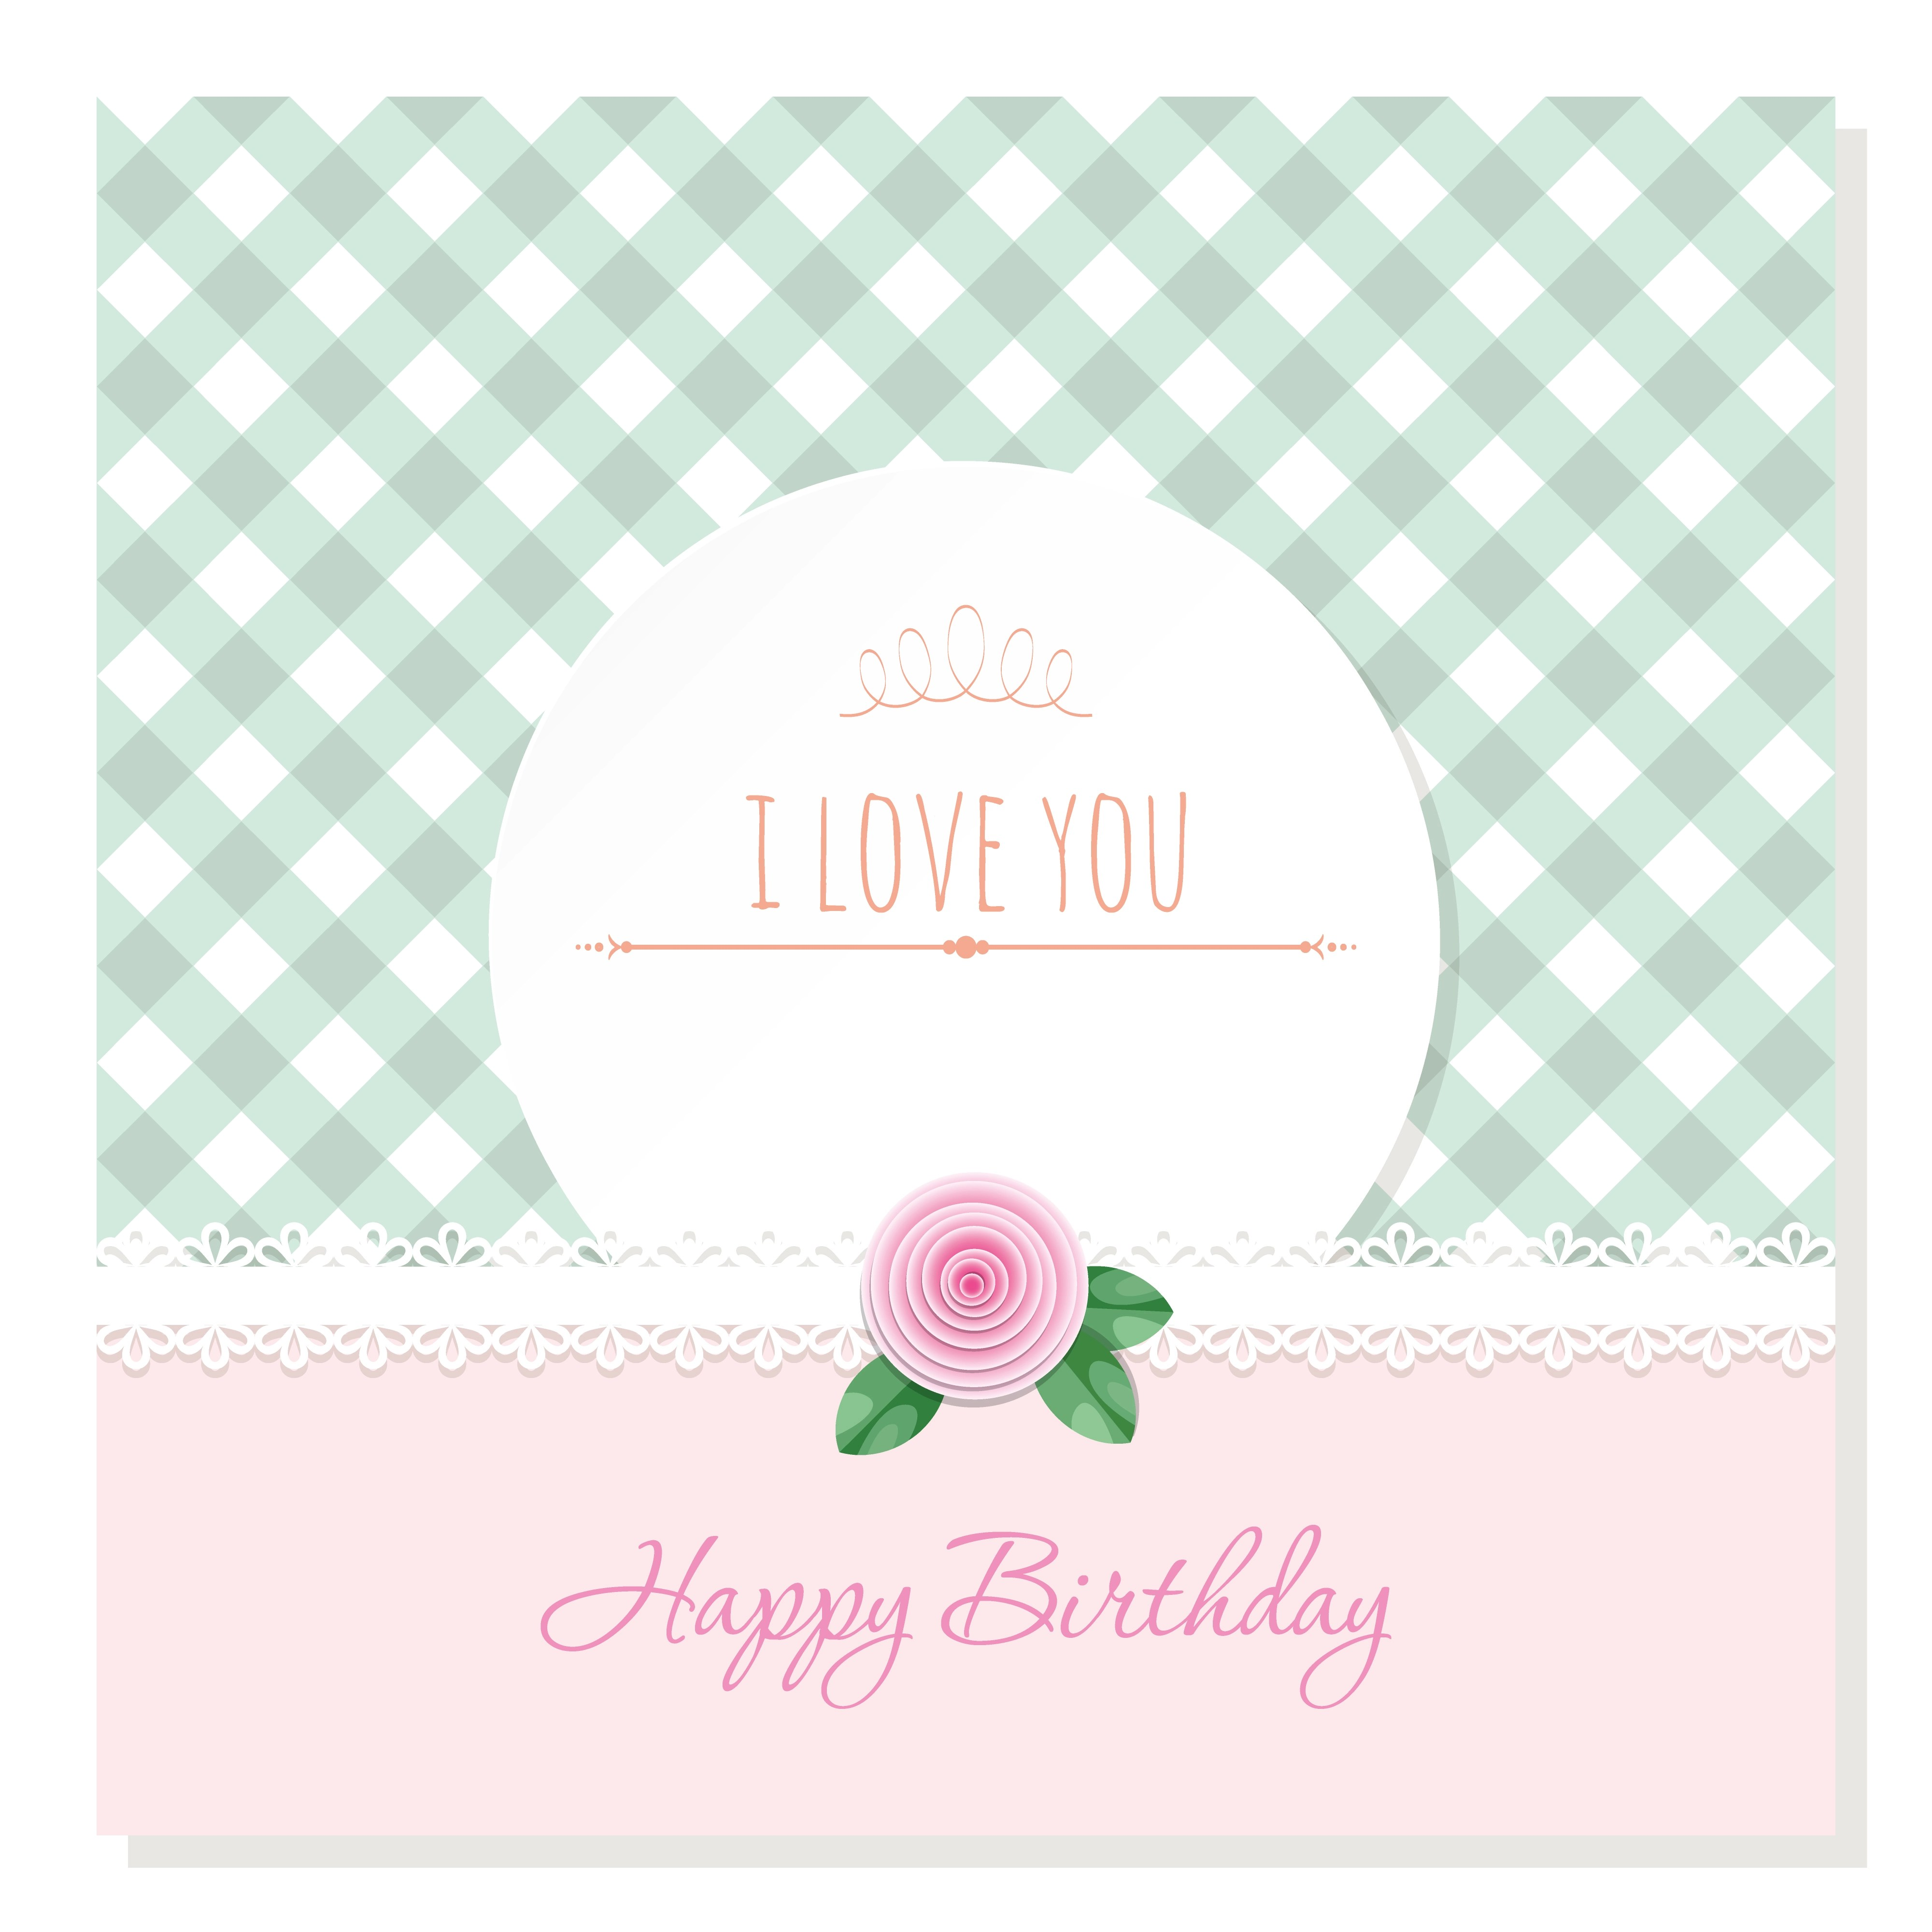 T Alphabet Cute Wallpaper Birthday Greeting Card Template Round Frame On Plaid